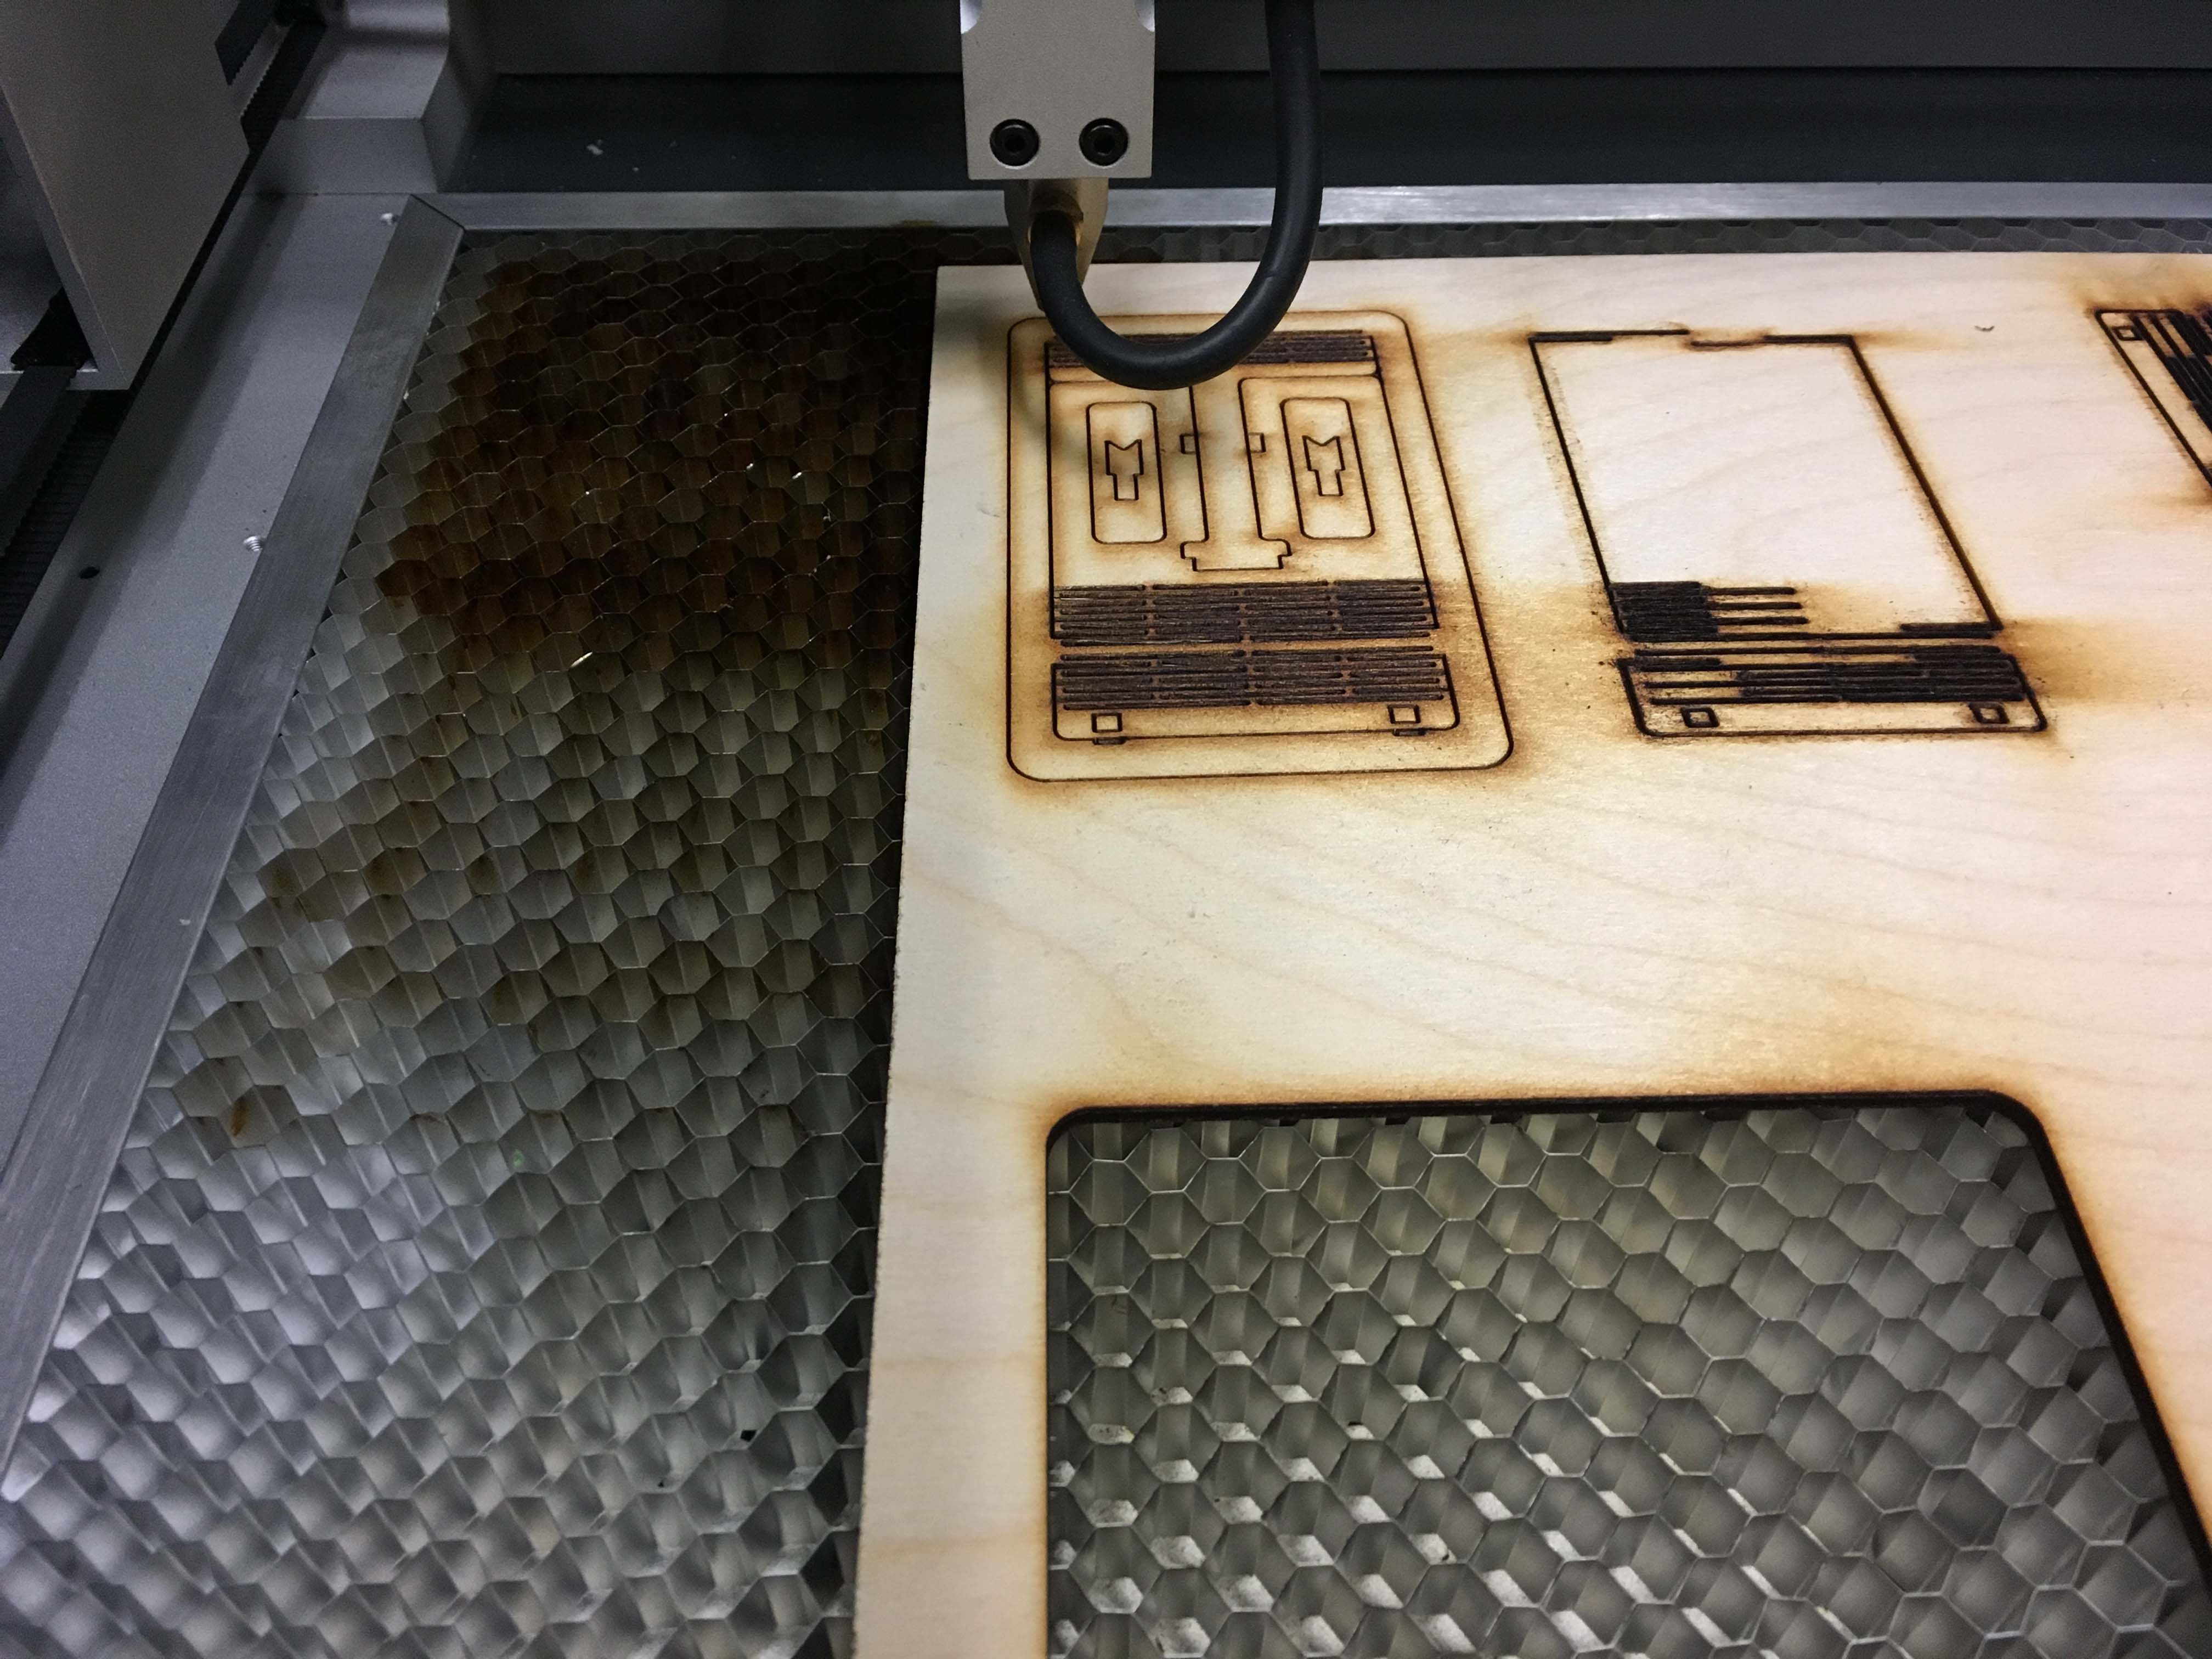 MakerLab: Laser Cutting 101